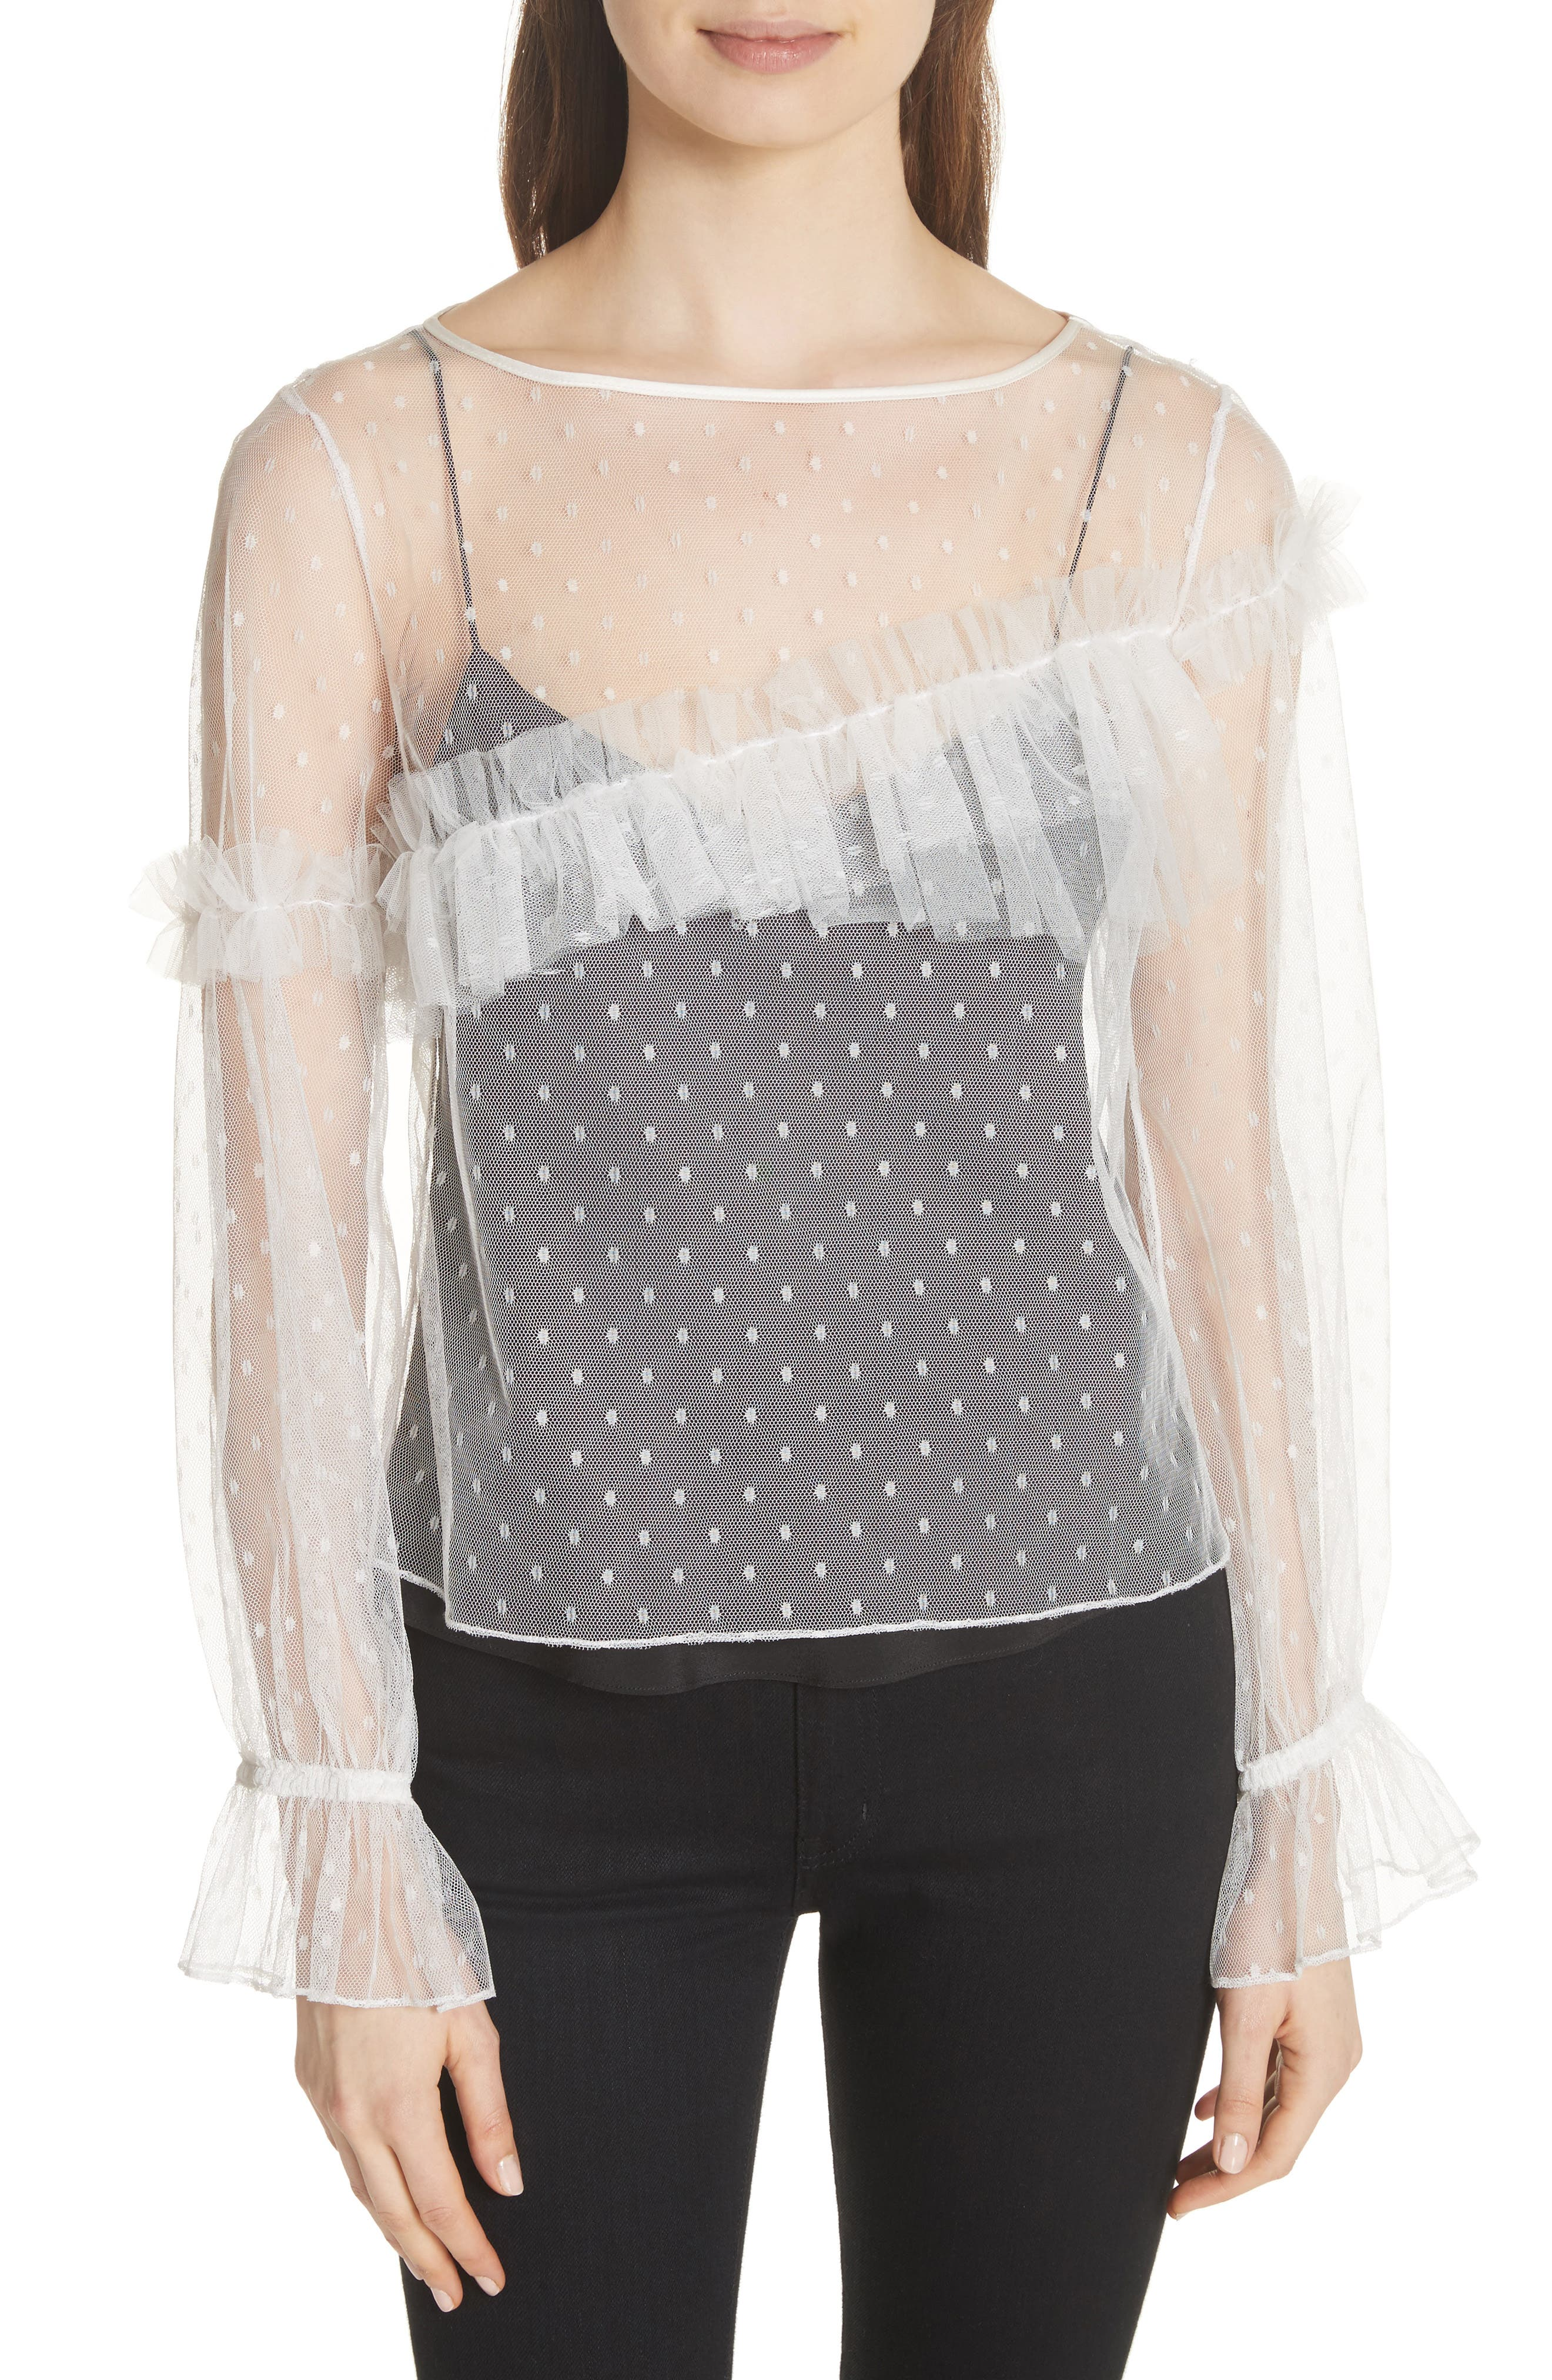 Indio Layered Swiss Dot Top,                         Main,                         color, Ivory